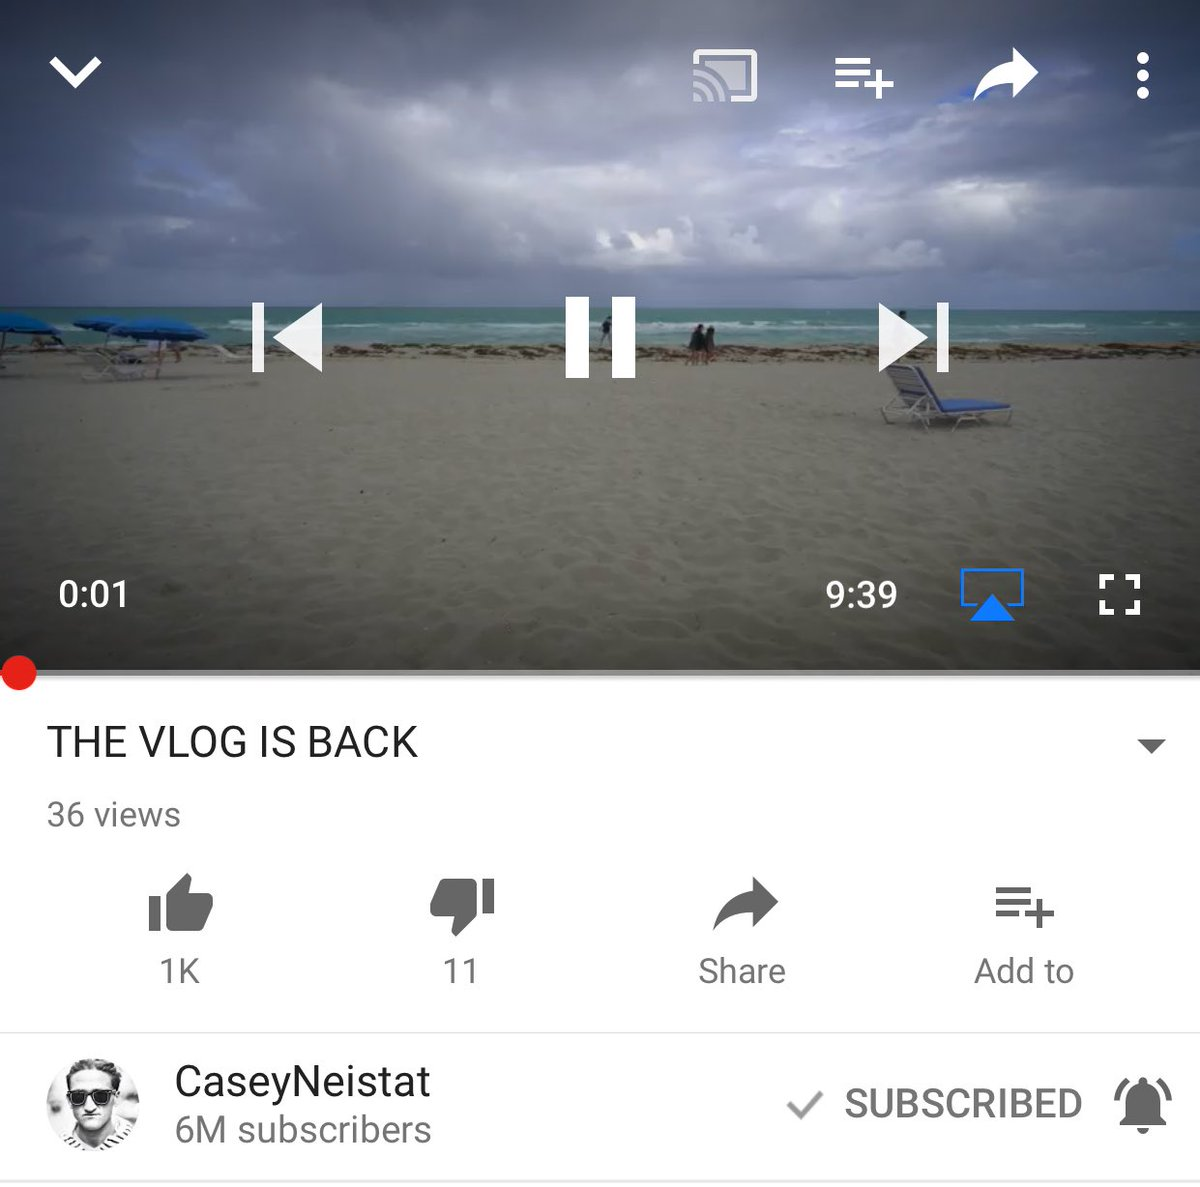 The vlog is back!  @CaseyNeistat   https://t.co/6apoMJRxor https://t.c...